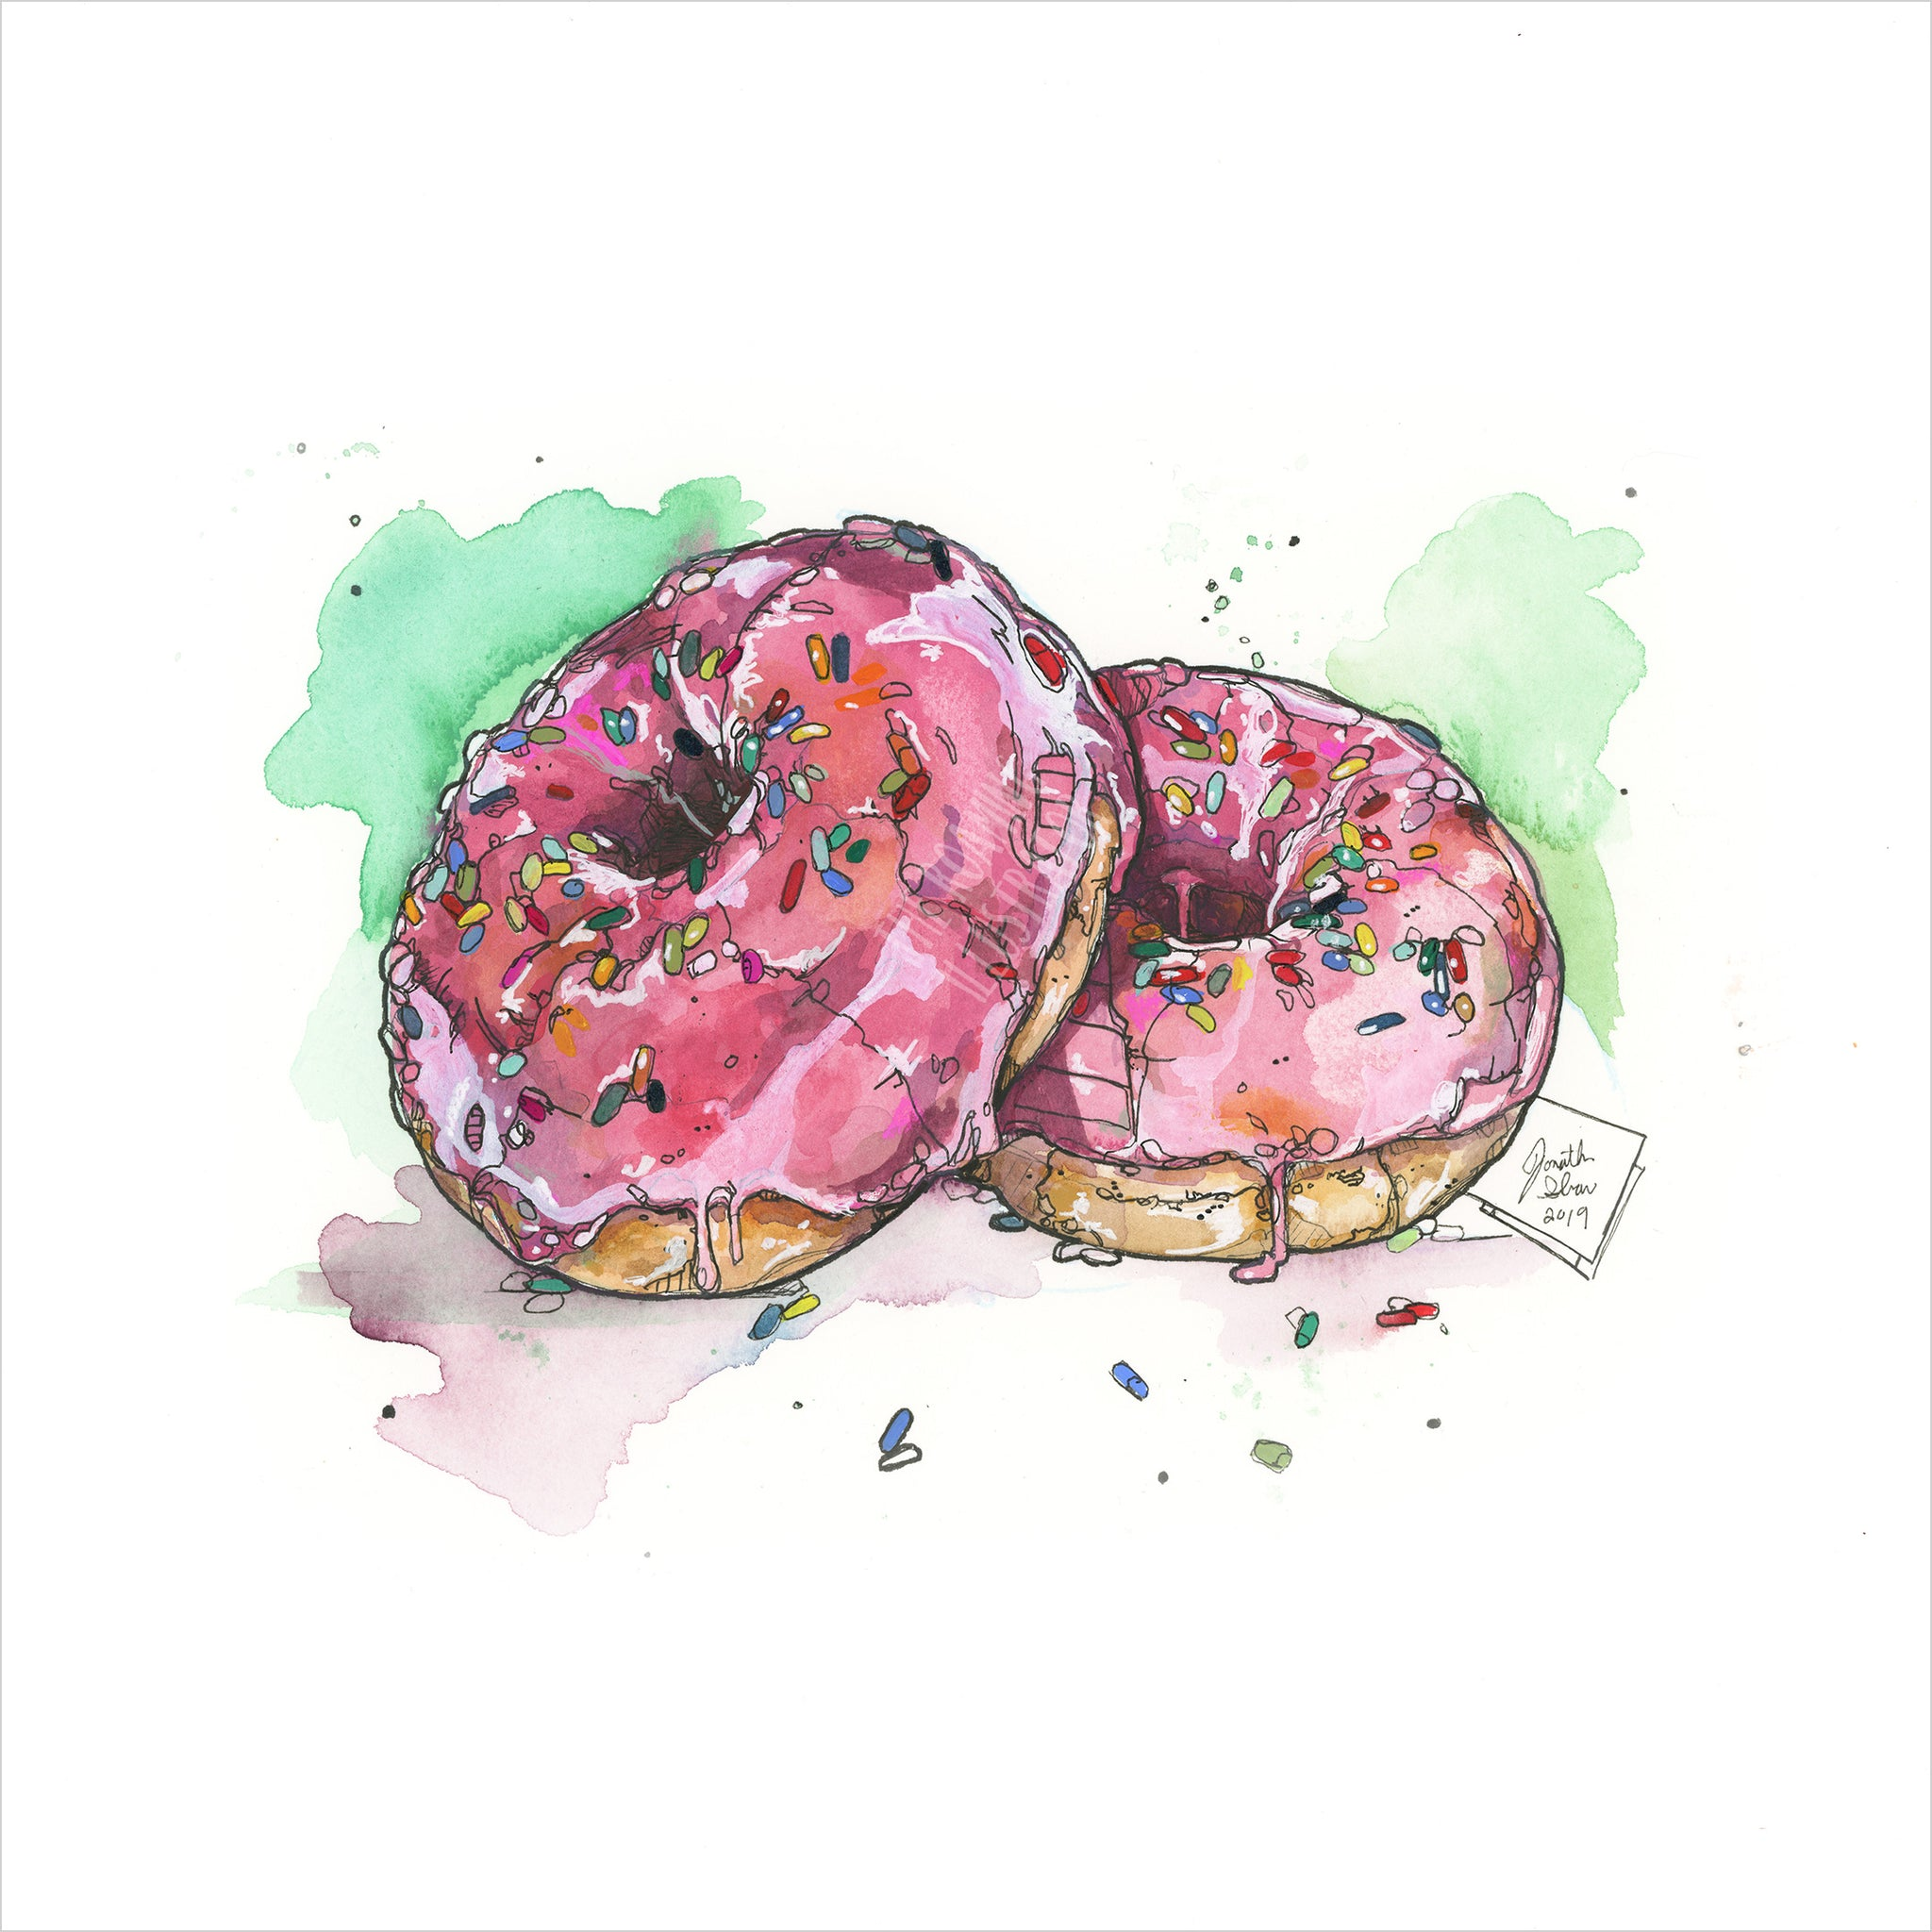 """Glazed Donuts"" - Original 8x10 Illustration"